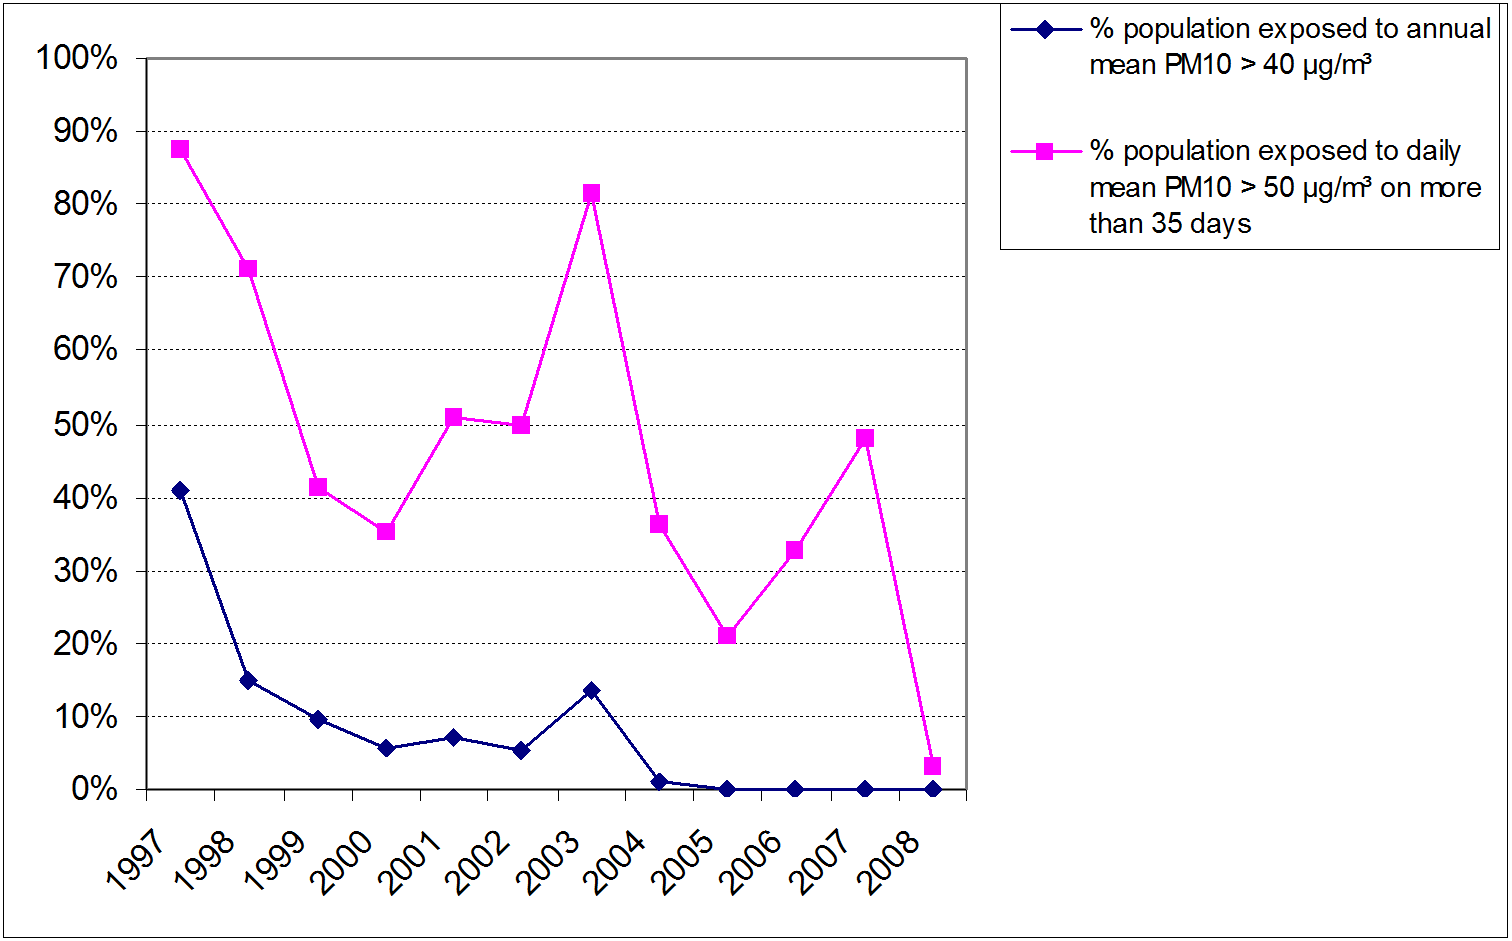 Figure 2: Percentage of the Belgian population potentially exposed to PM10 concentrations